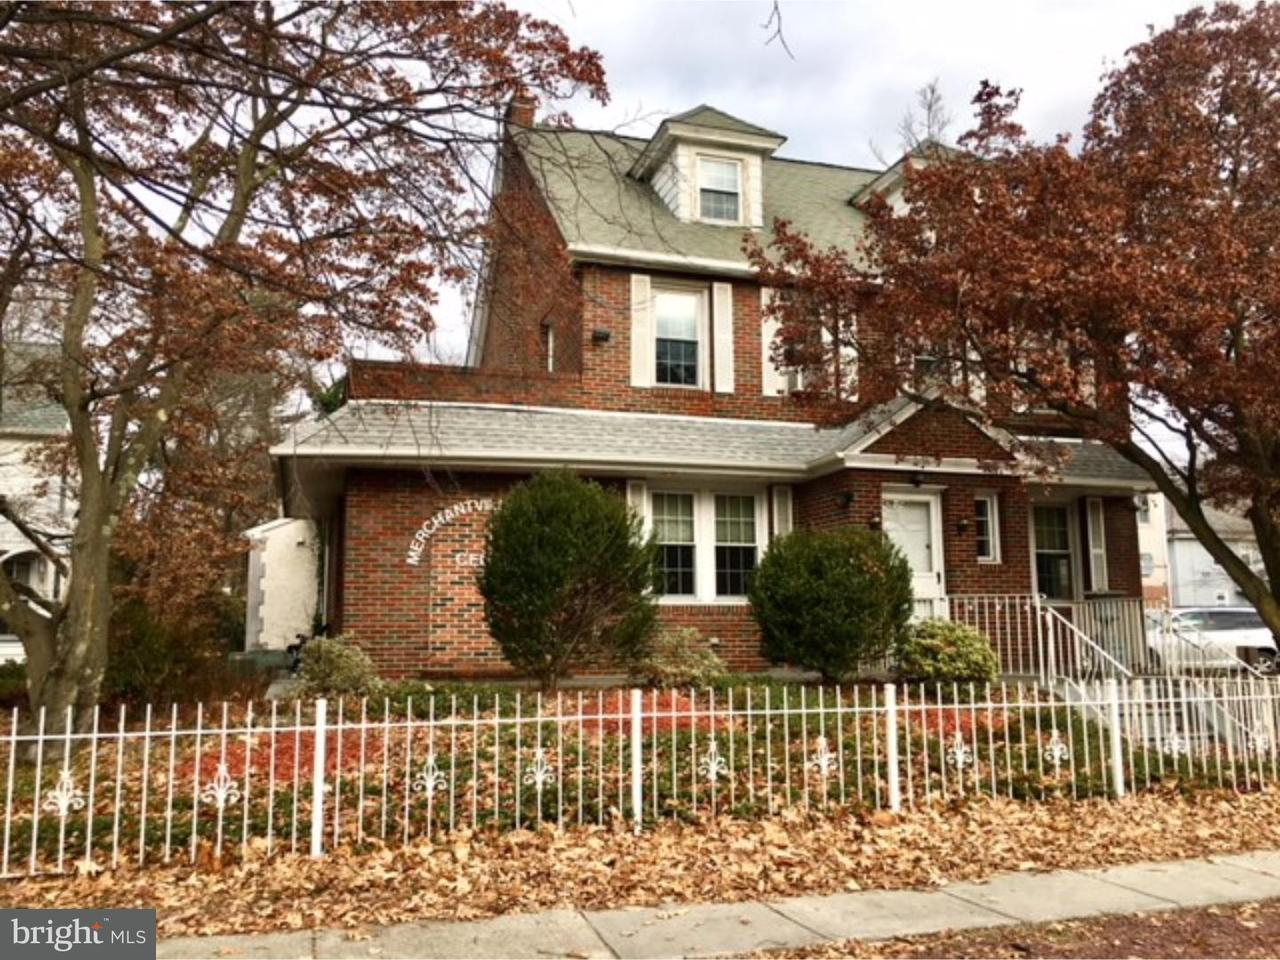 Single Family Home for Sale at 5 W CHESTNUT Avenue Merchantville, New Jersey 08109 United States